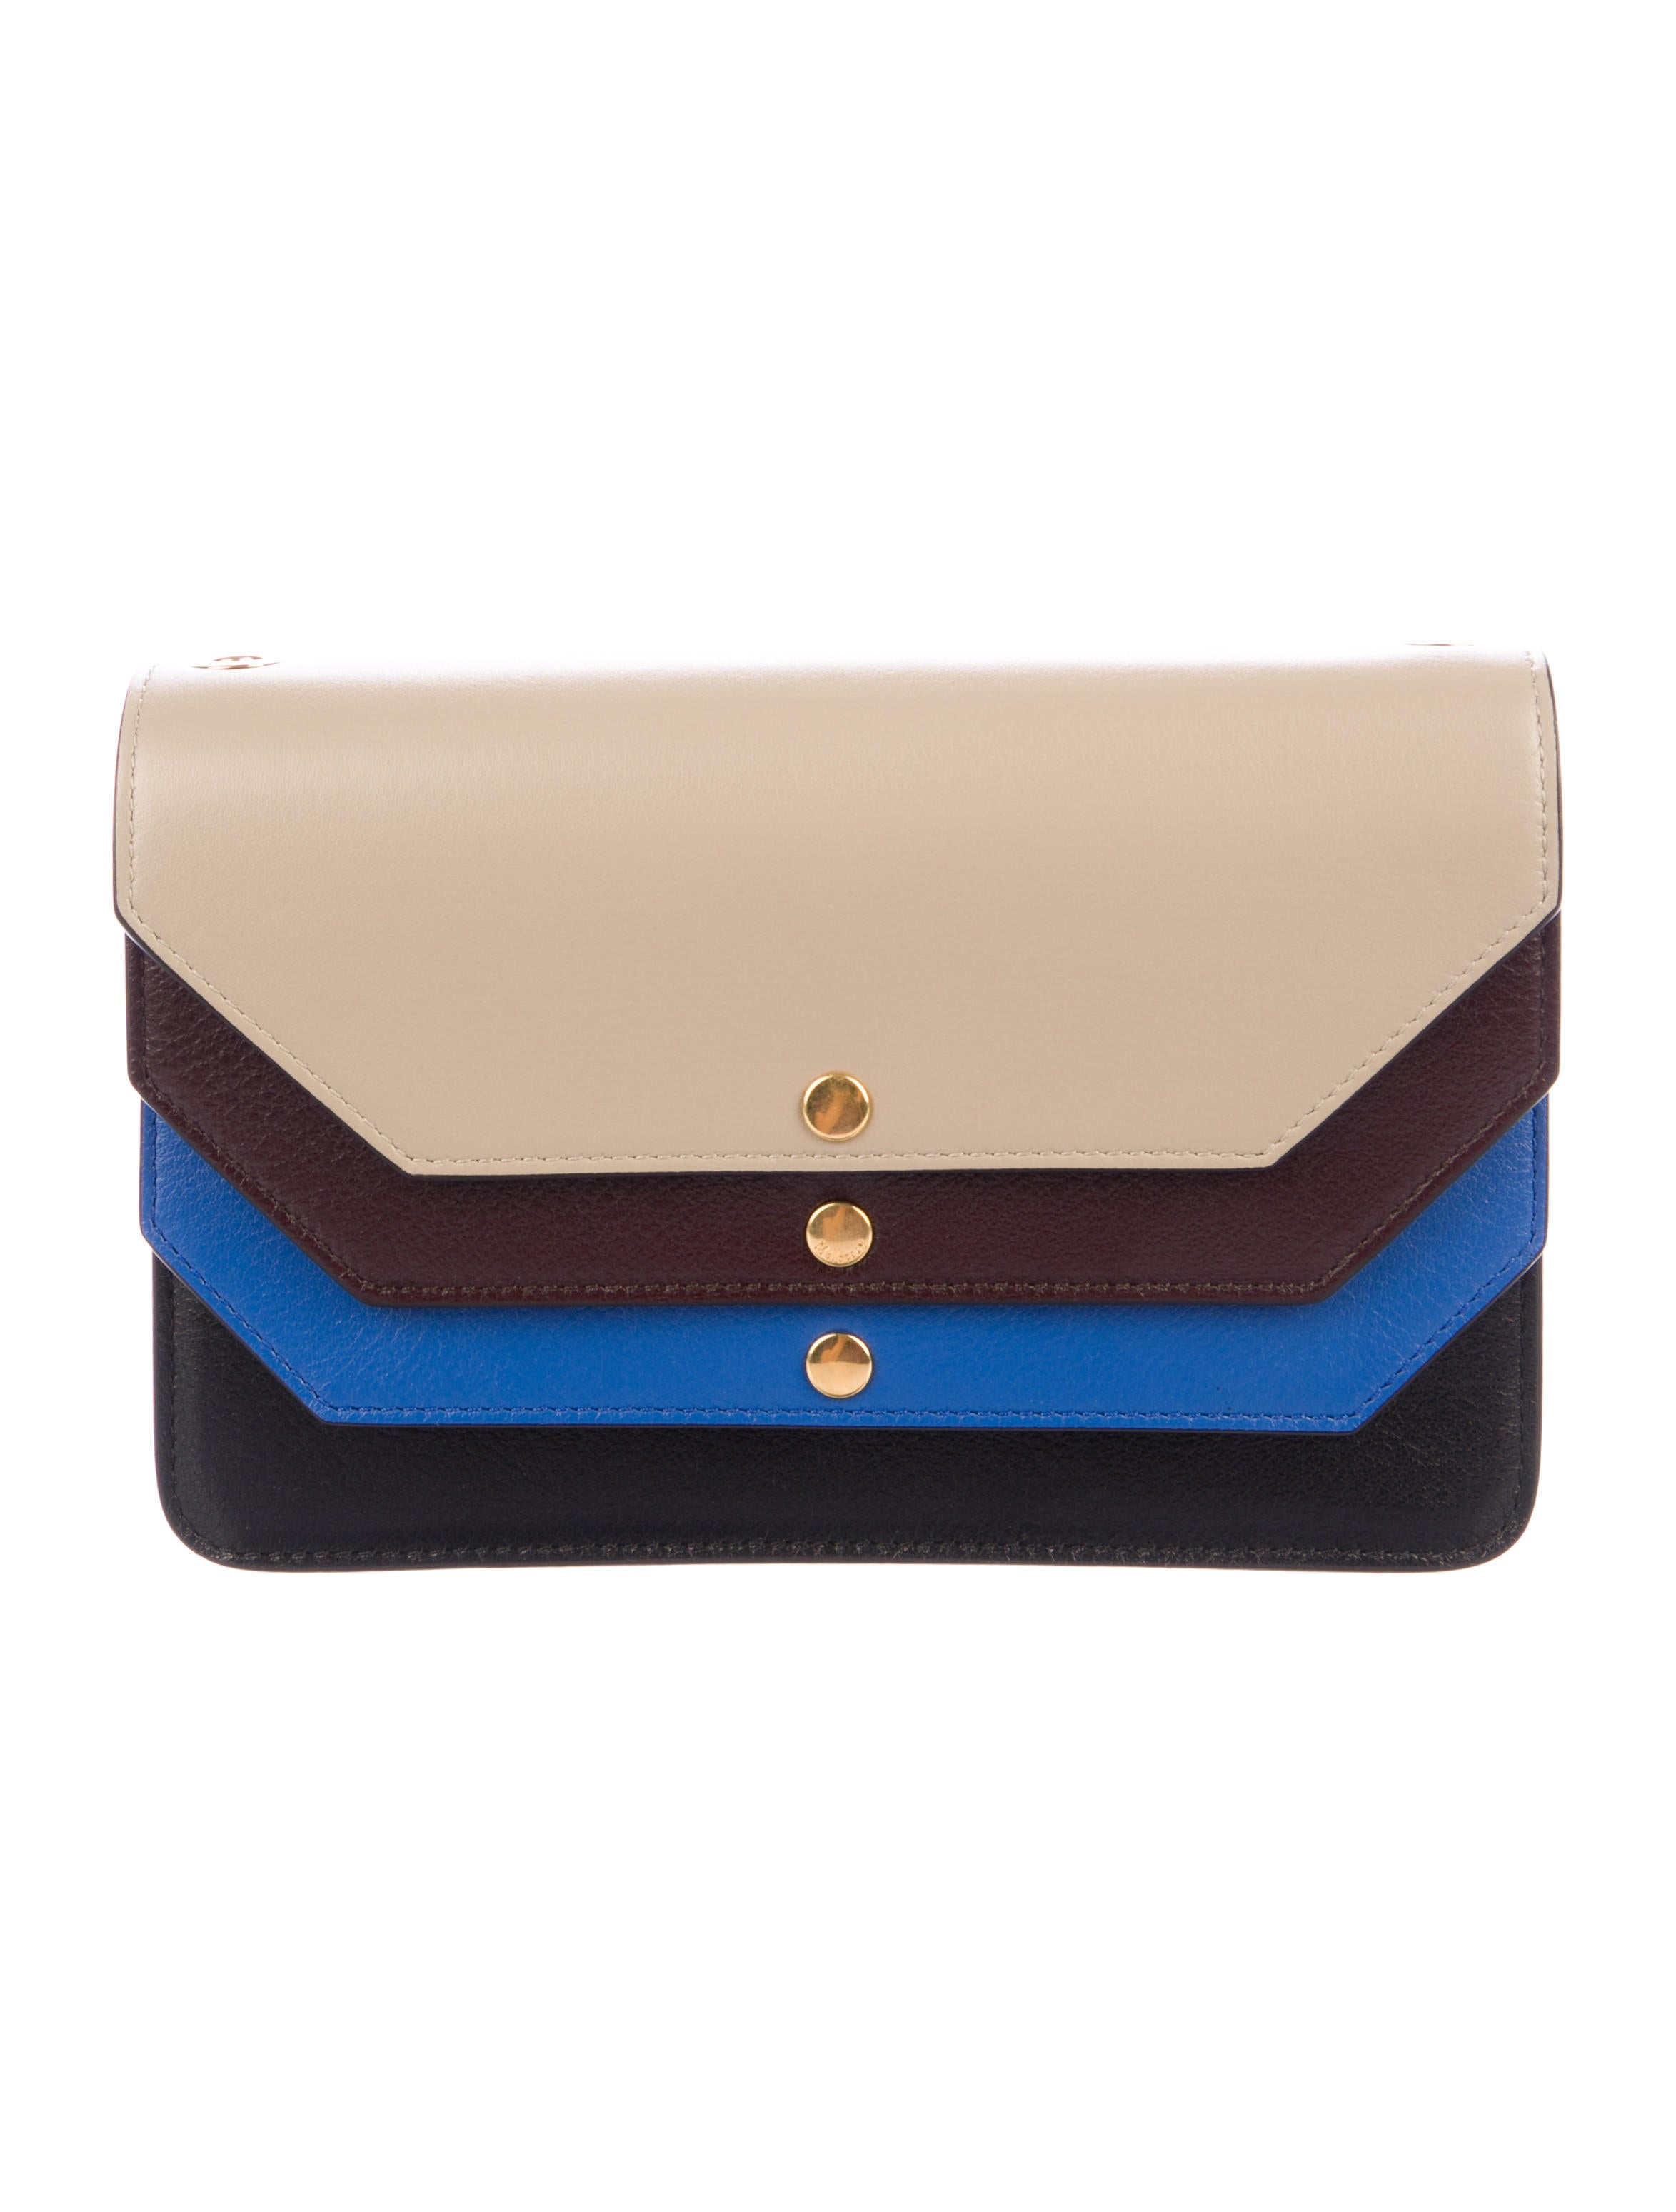 a749dc6bcba Mulberry Multiflap Leather Clutch - Handbags - MUL24143 | The RealReal